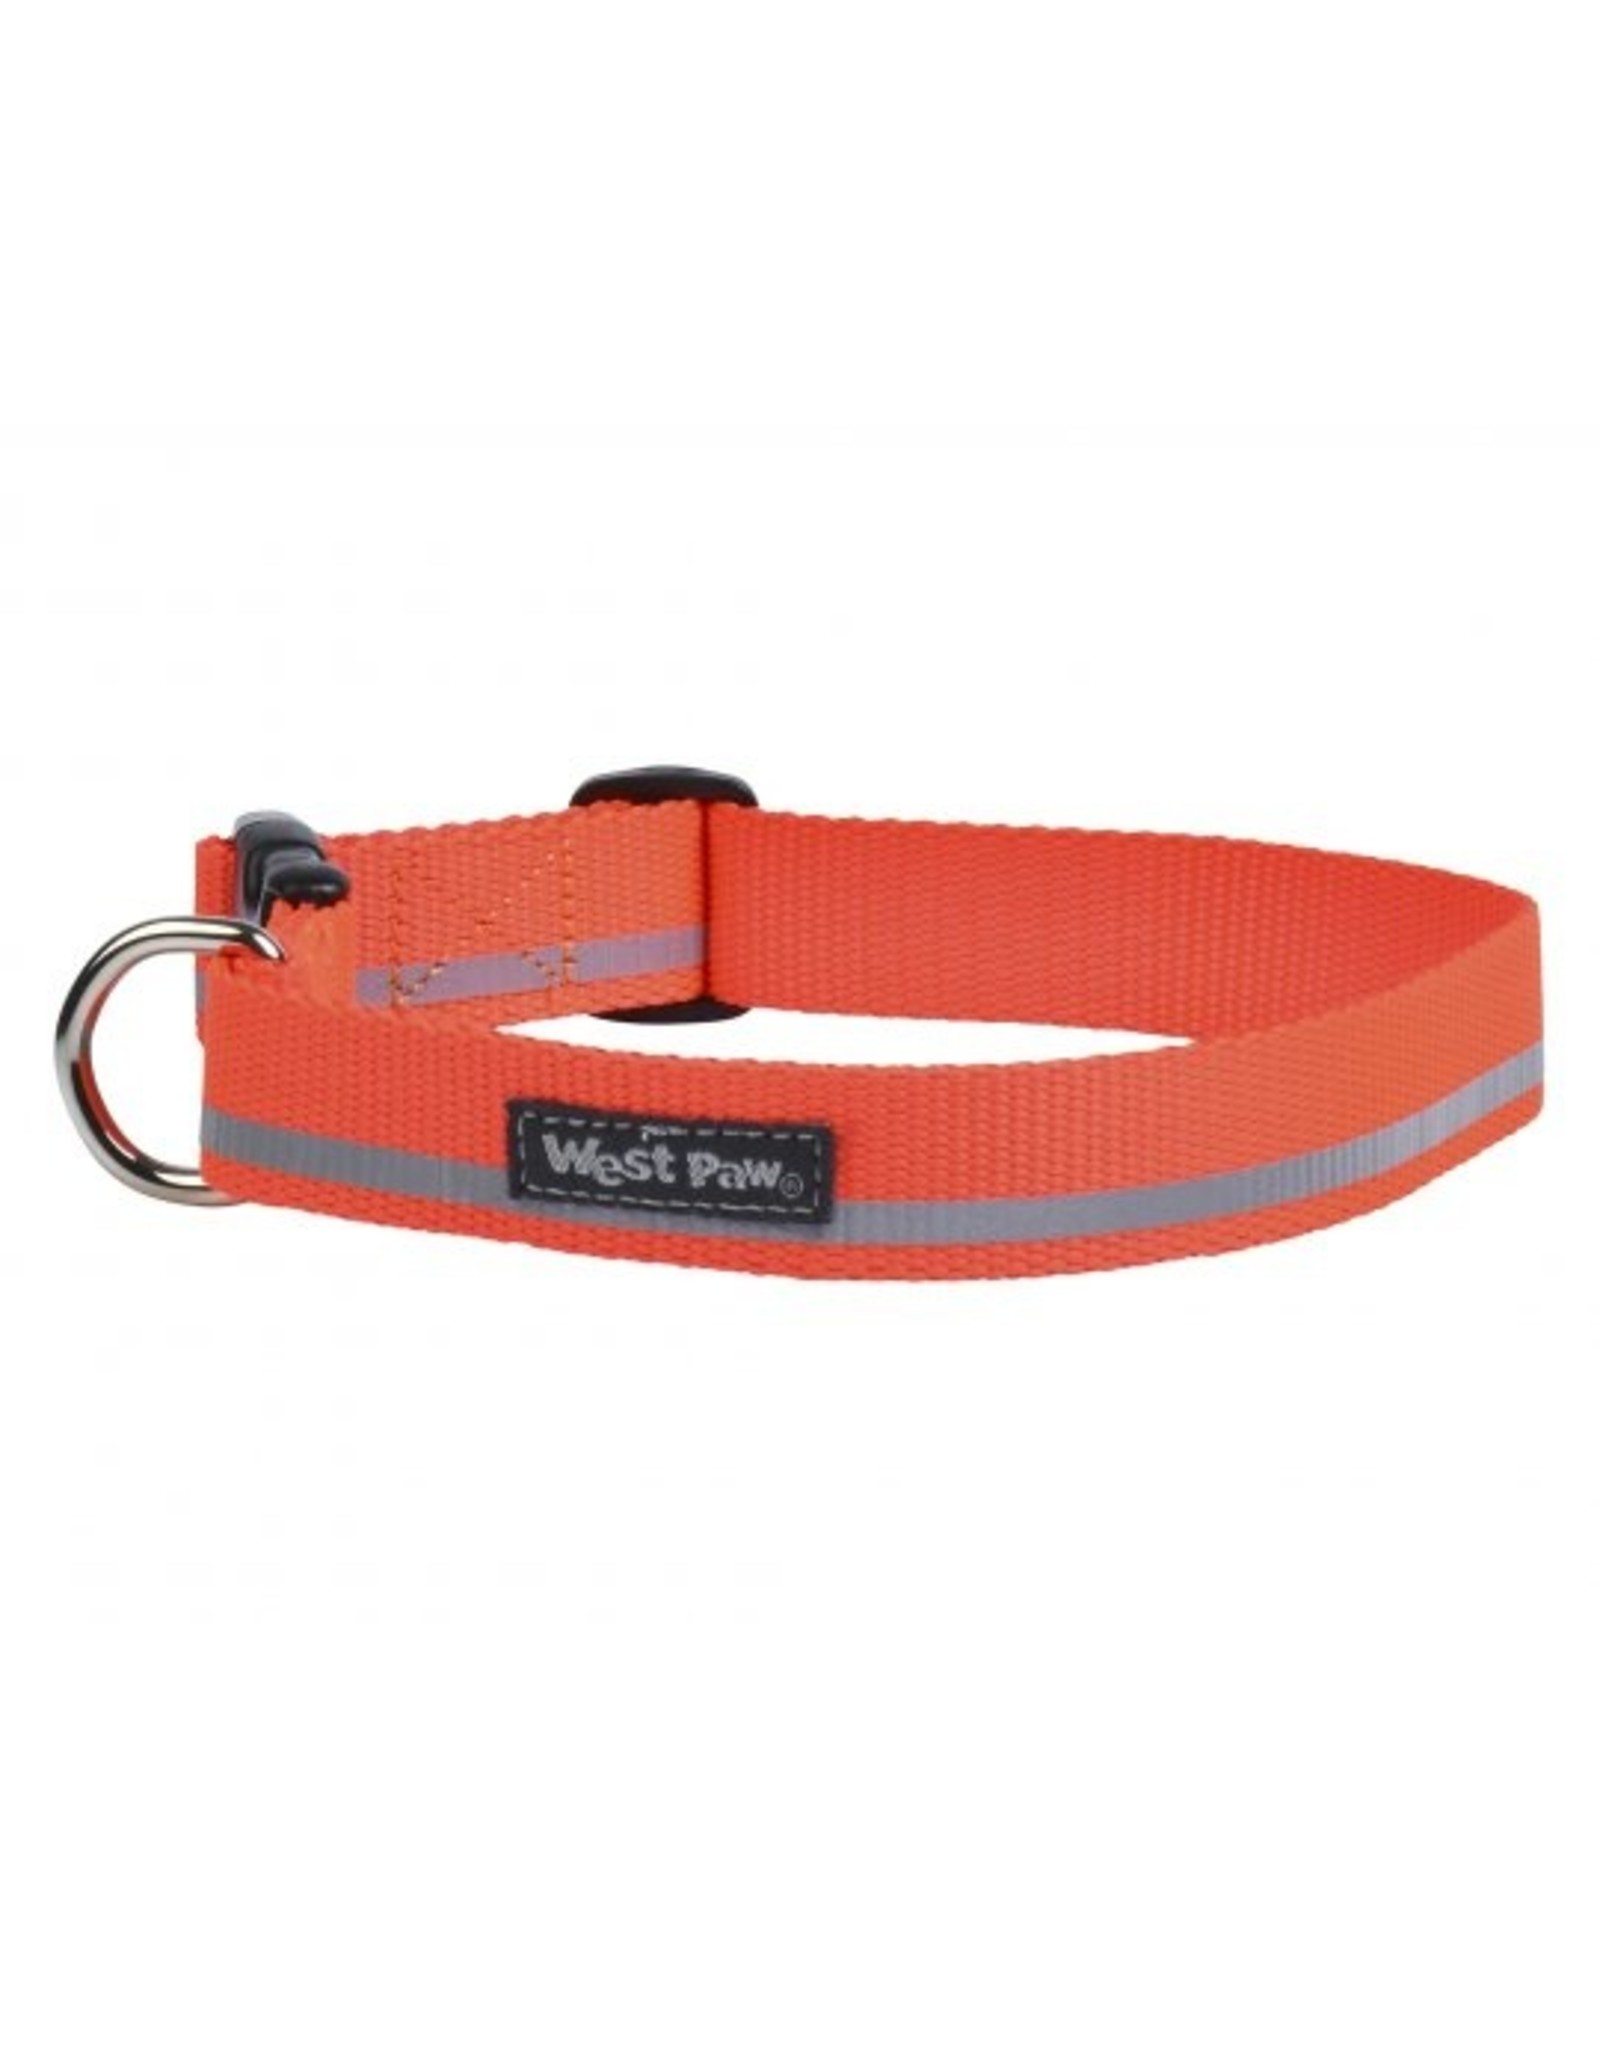 West Paw Designs Westpaw: Strolls Collar Small Neon Orange Reflective